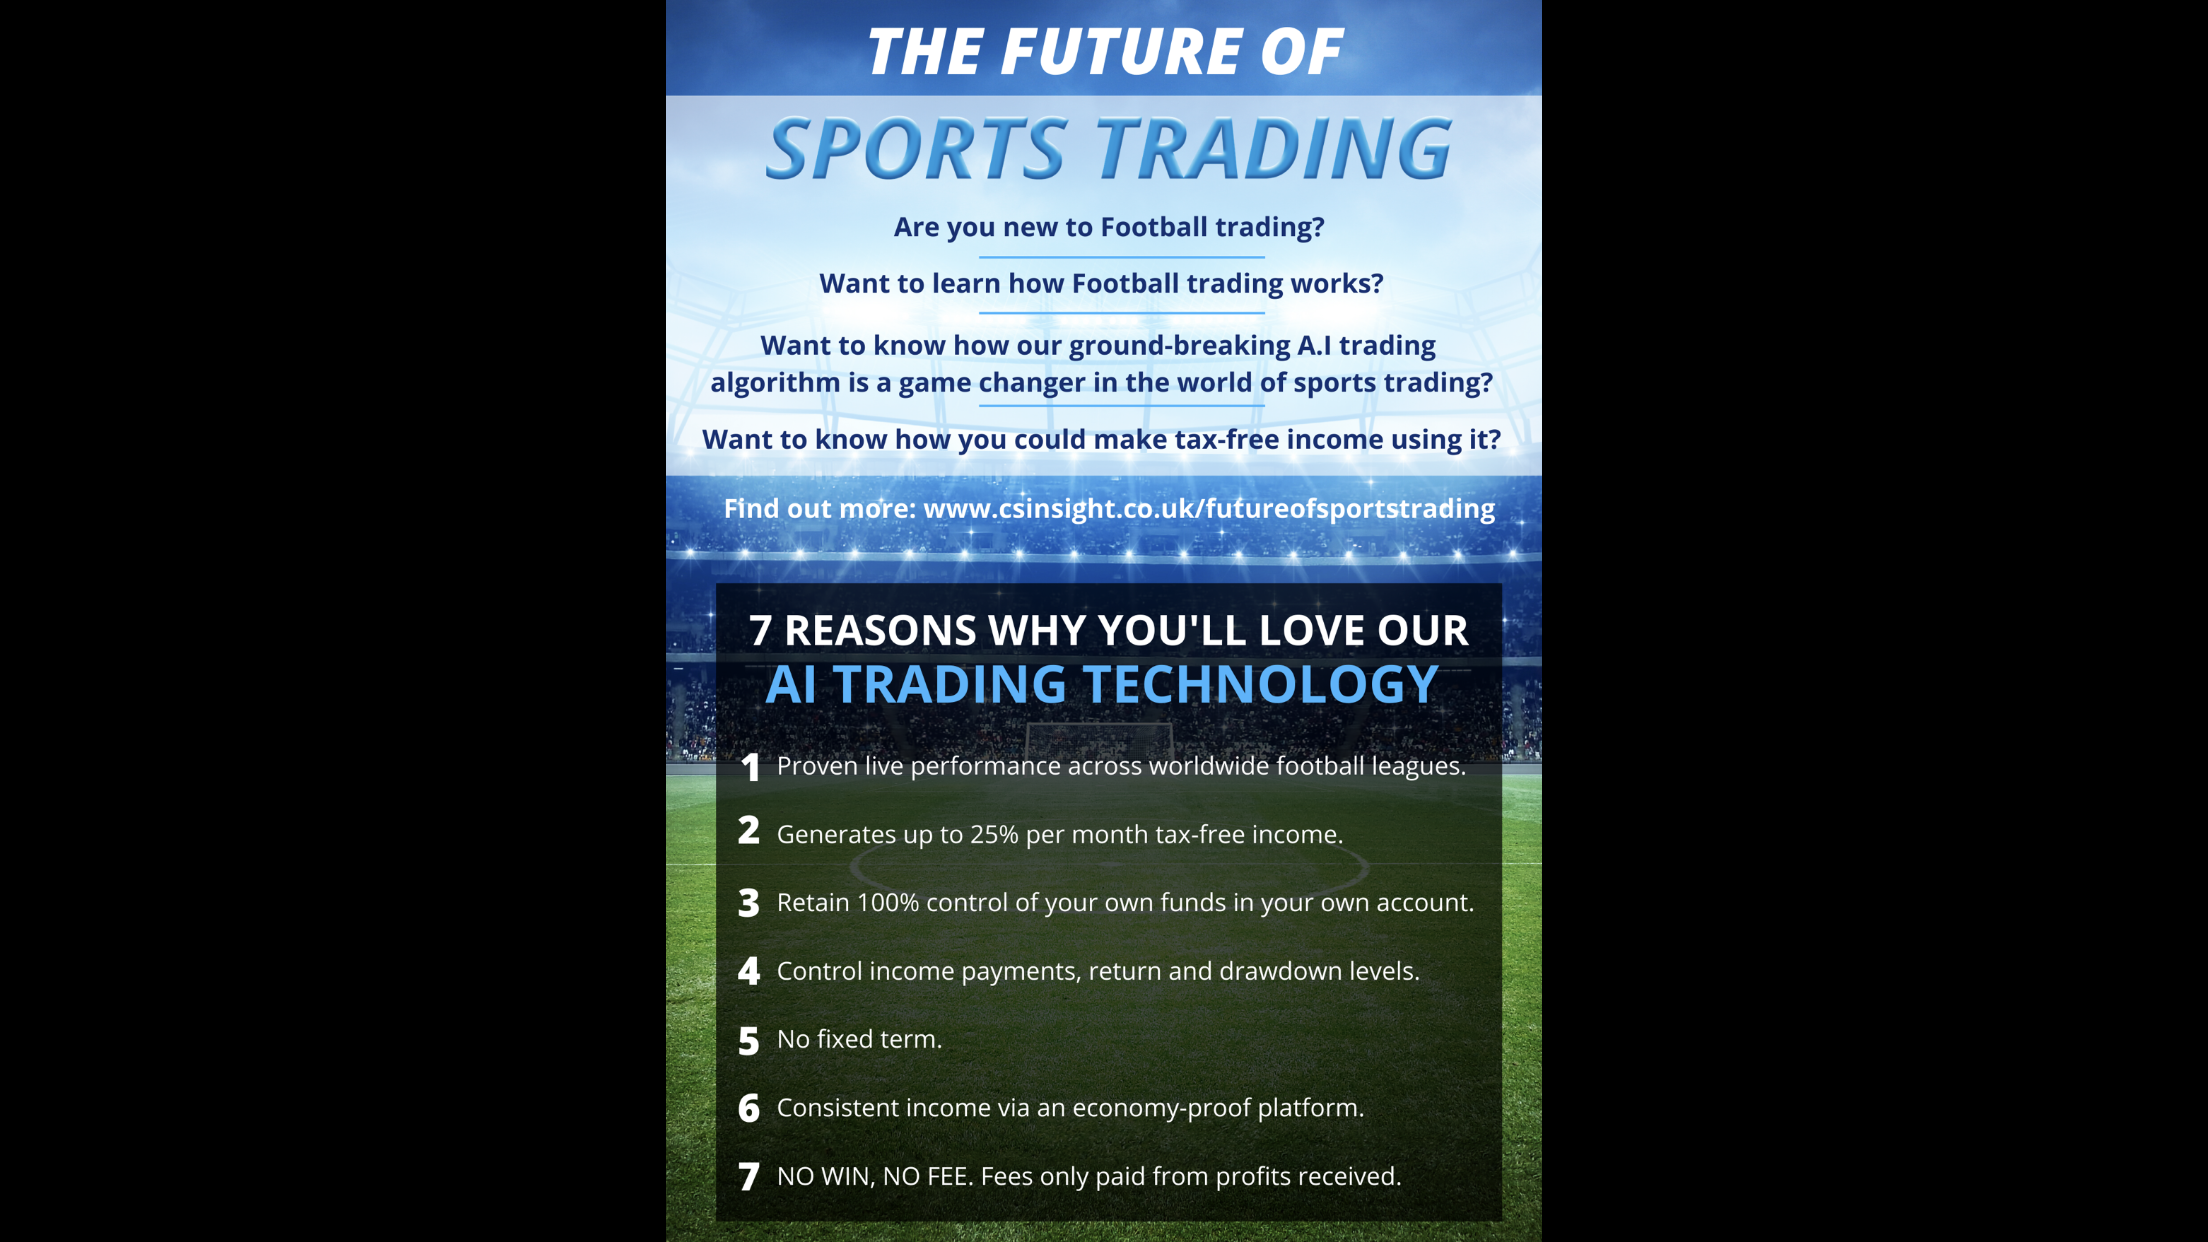 The Future of Sports Trading